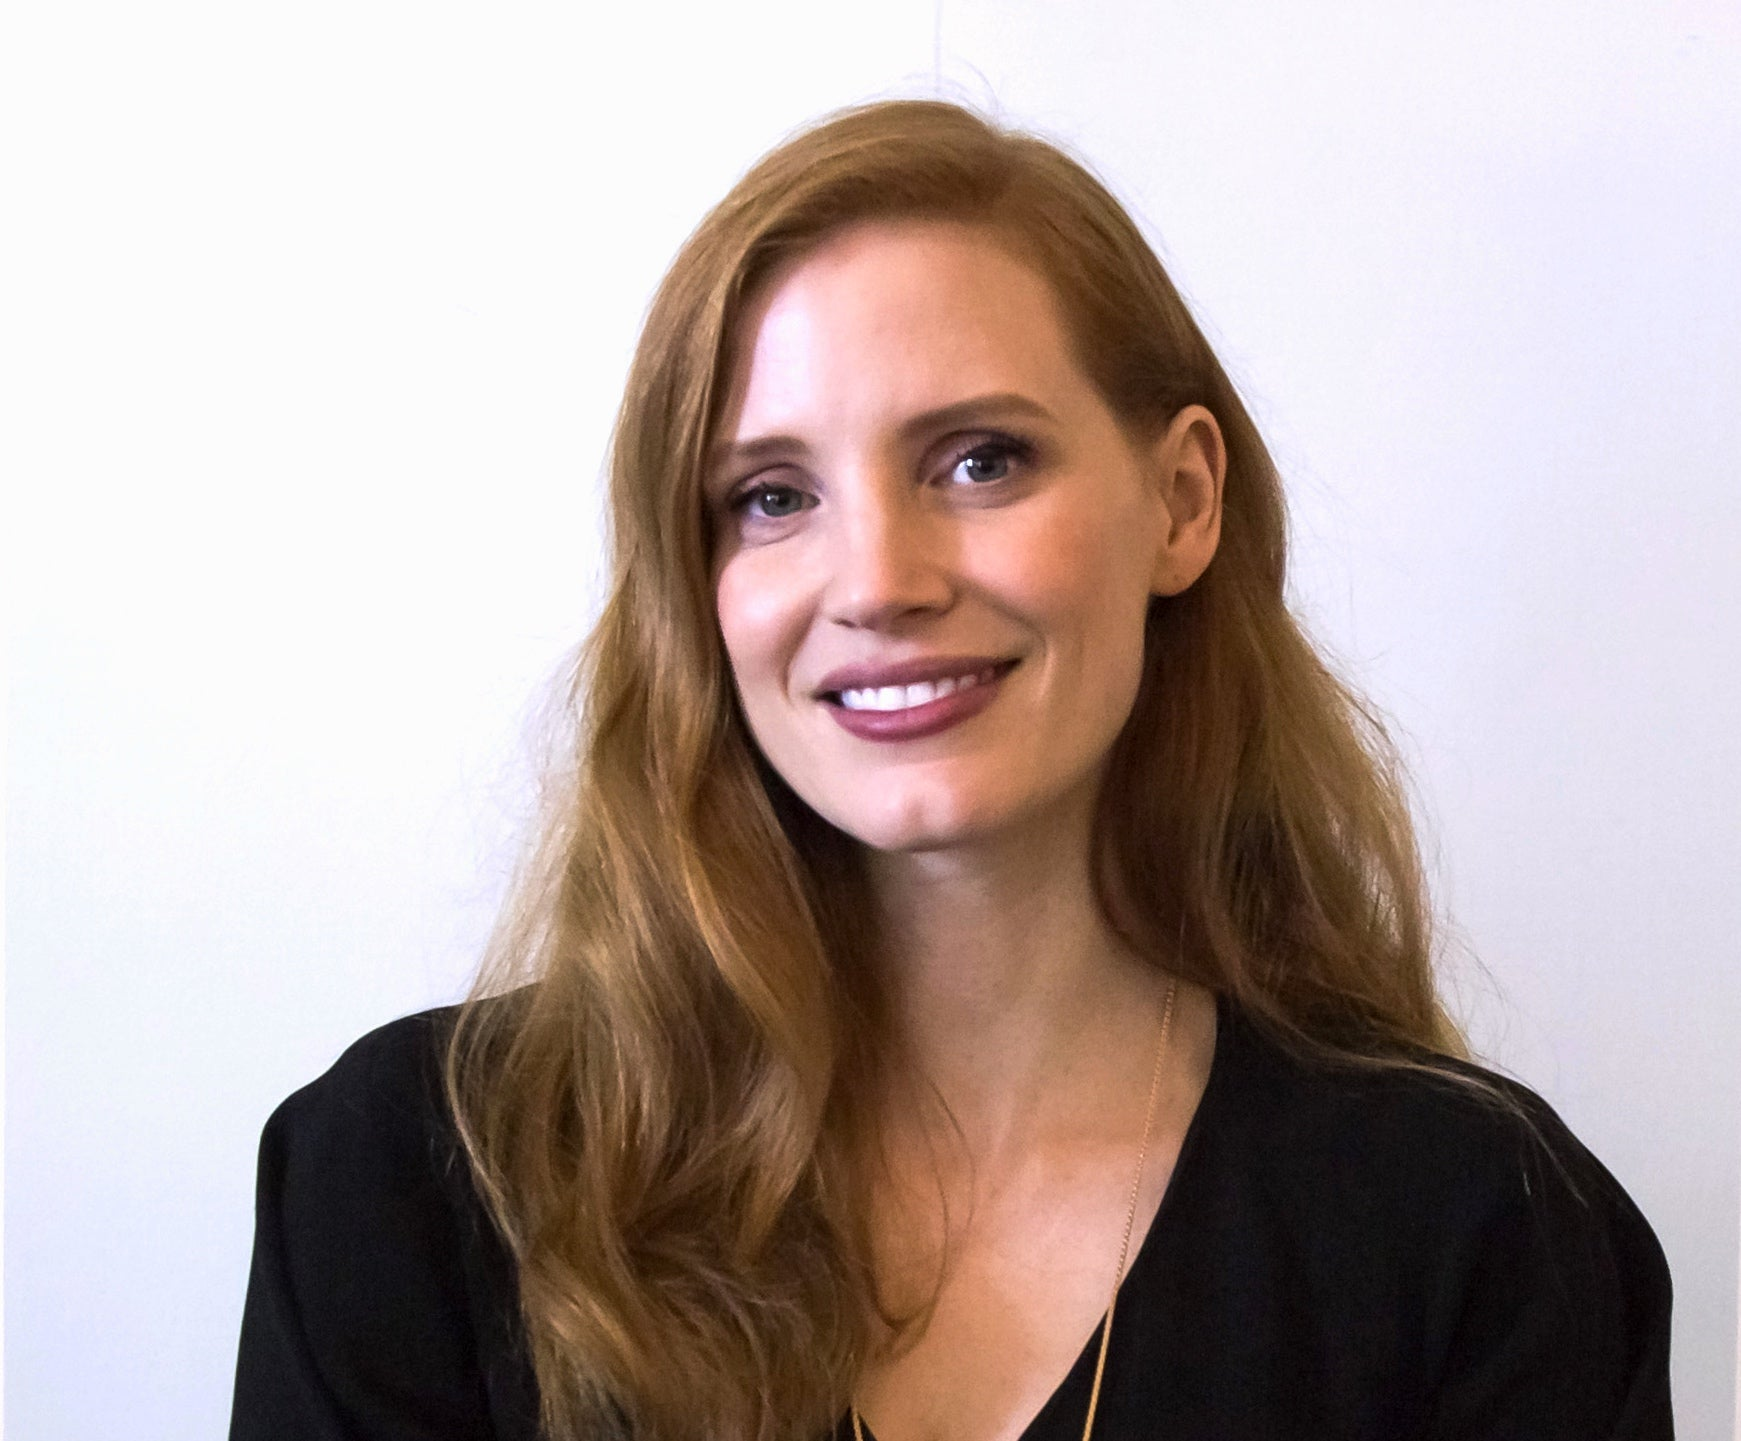 Fotos Jessica Chastain naked (88 photos), Sexy, Cleavage, Instagram, lingerie 2019